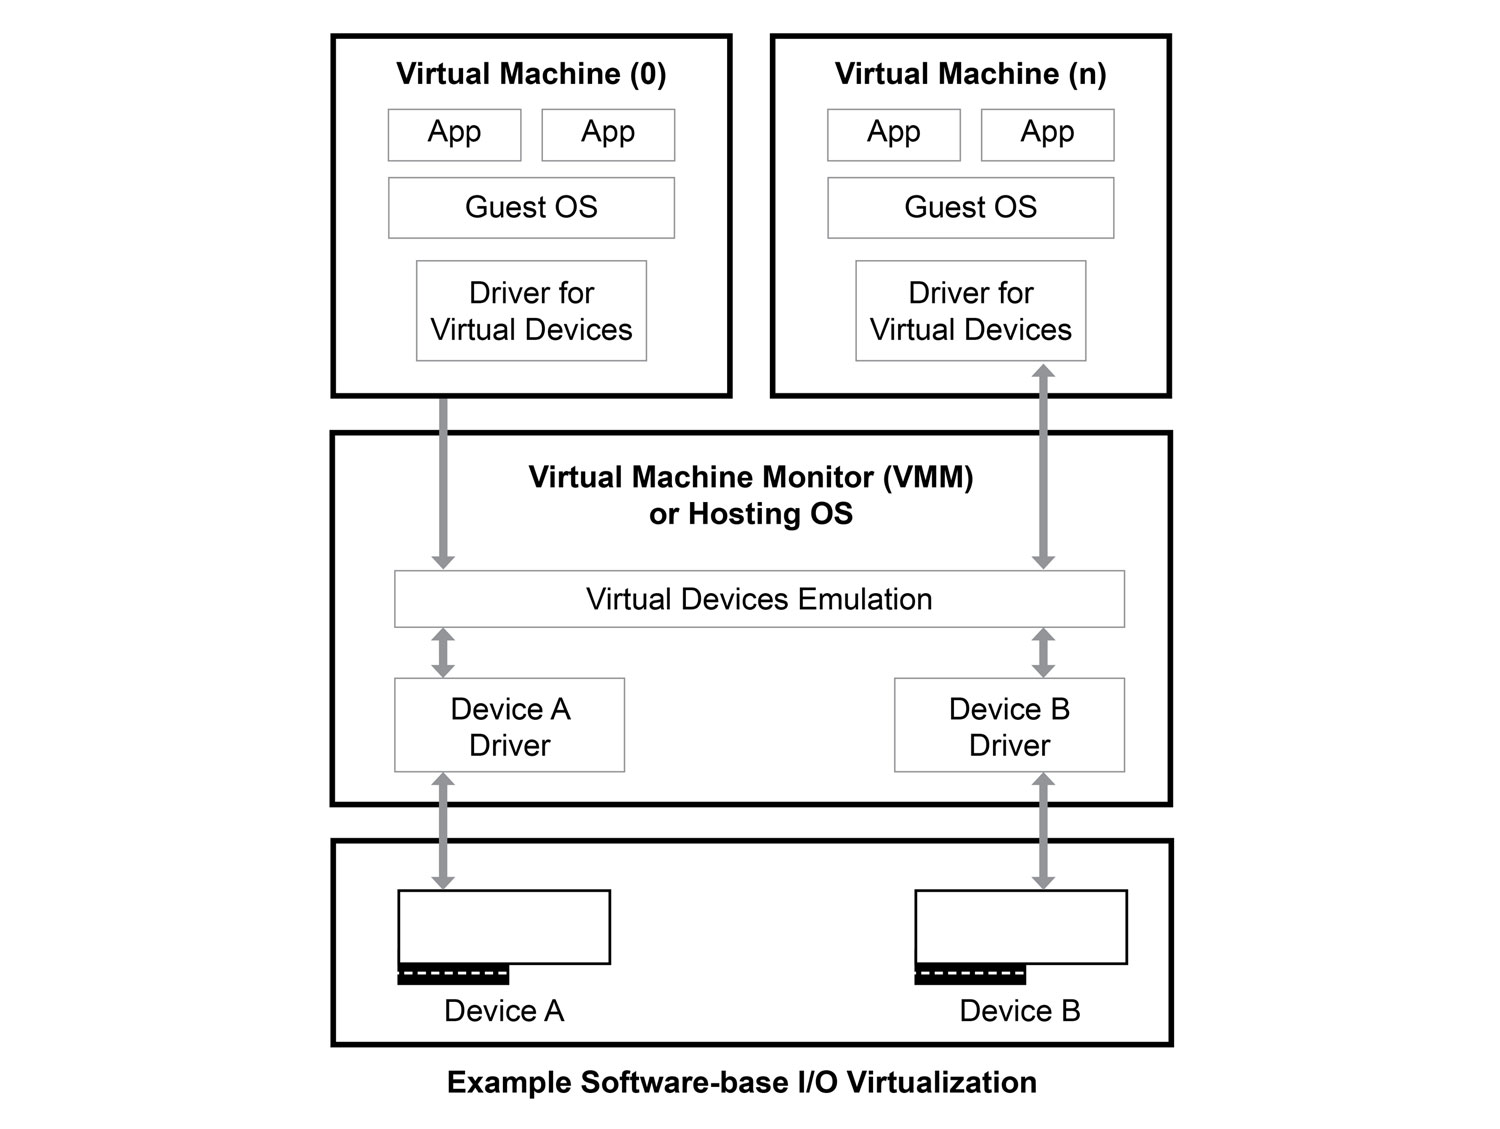 Intel Virtualization Technology for Directed I/O (Intel VT-d) uses hardware remapping to maximize system throughput